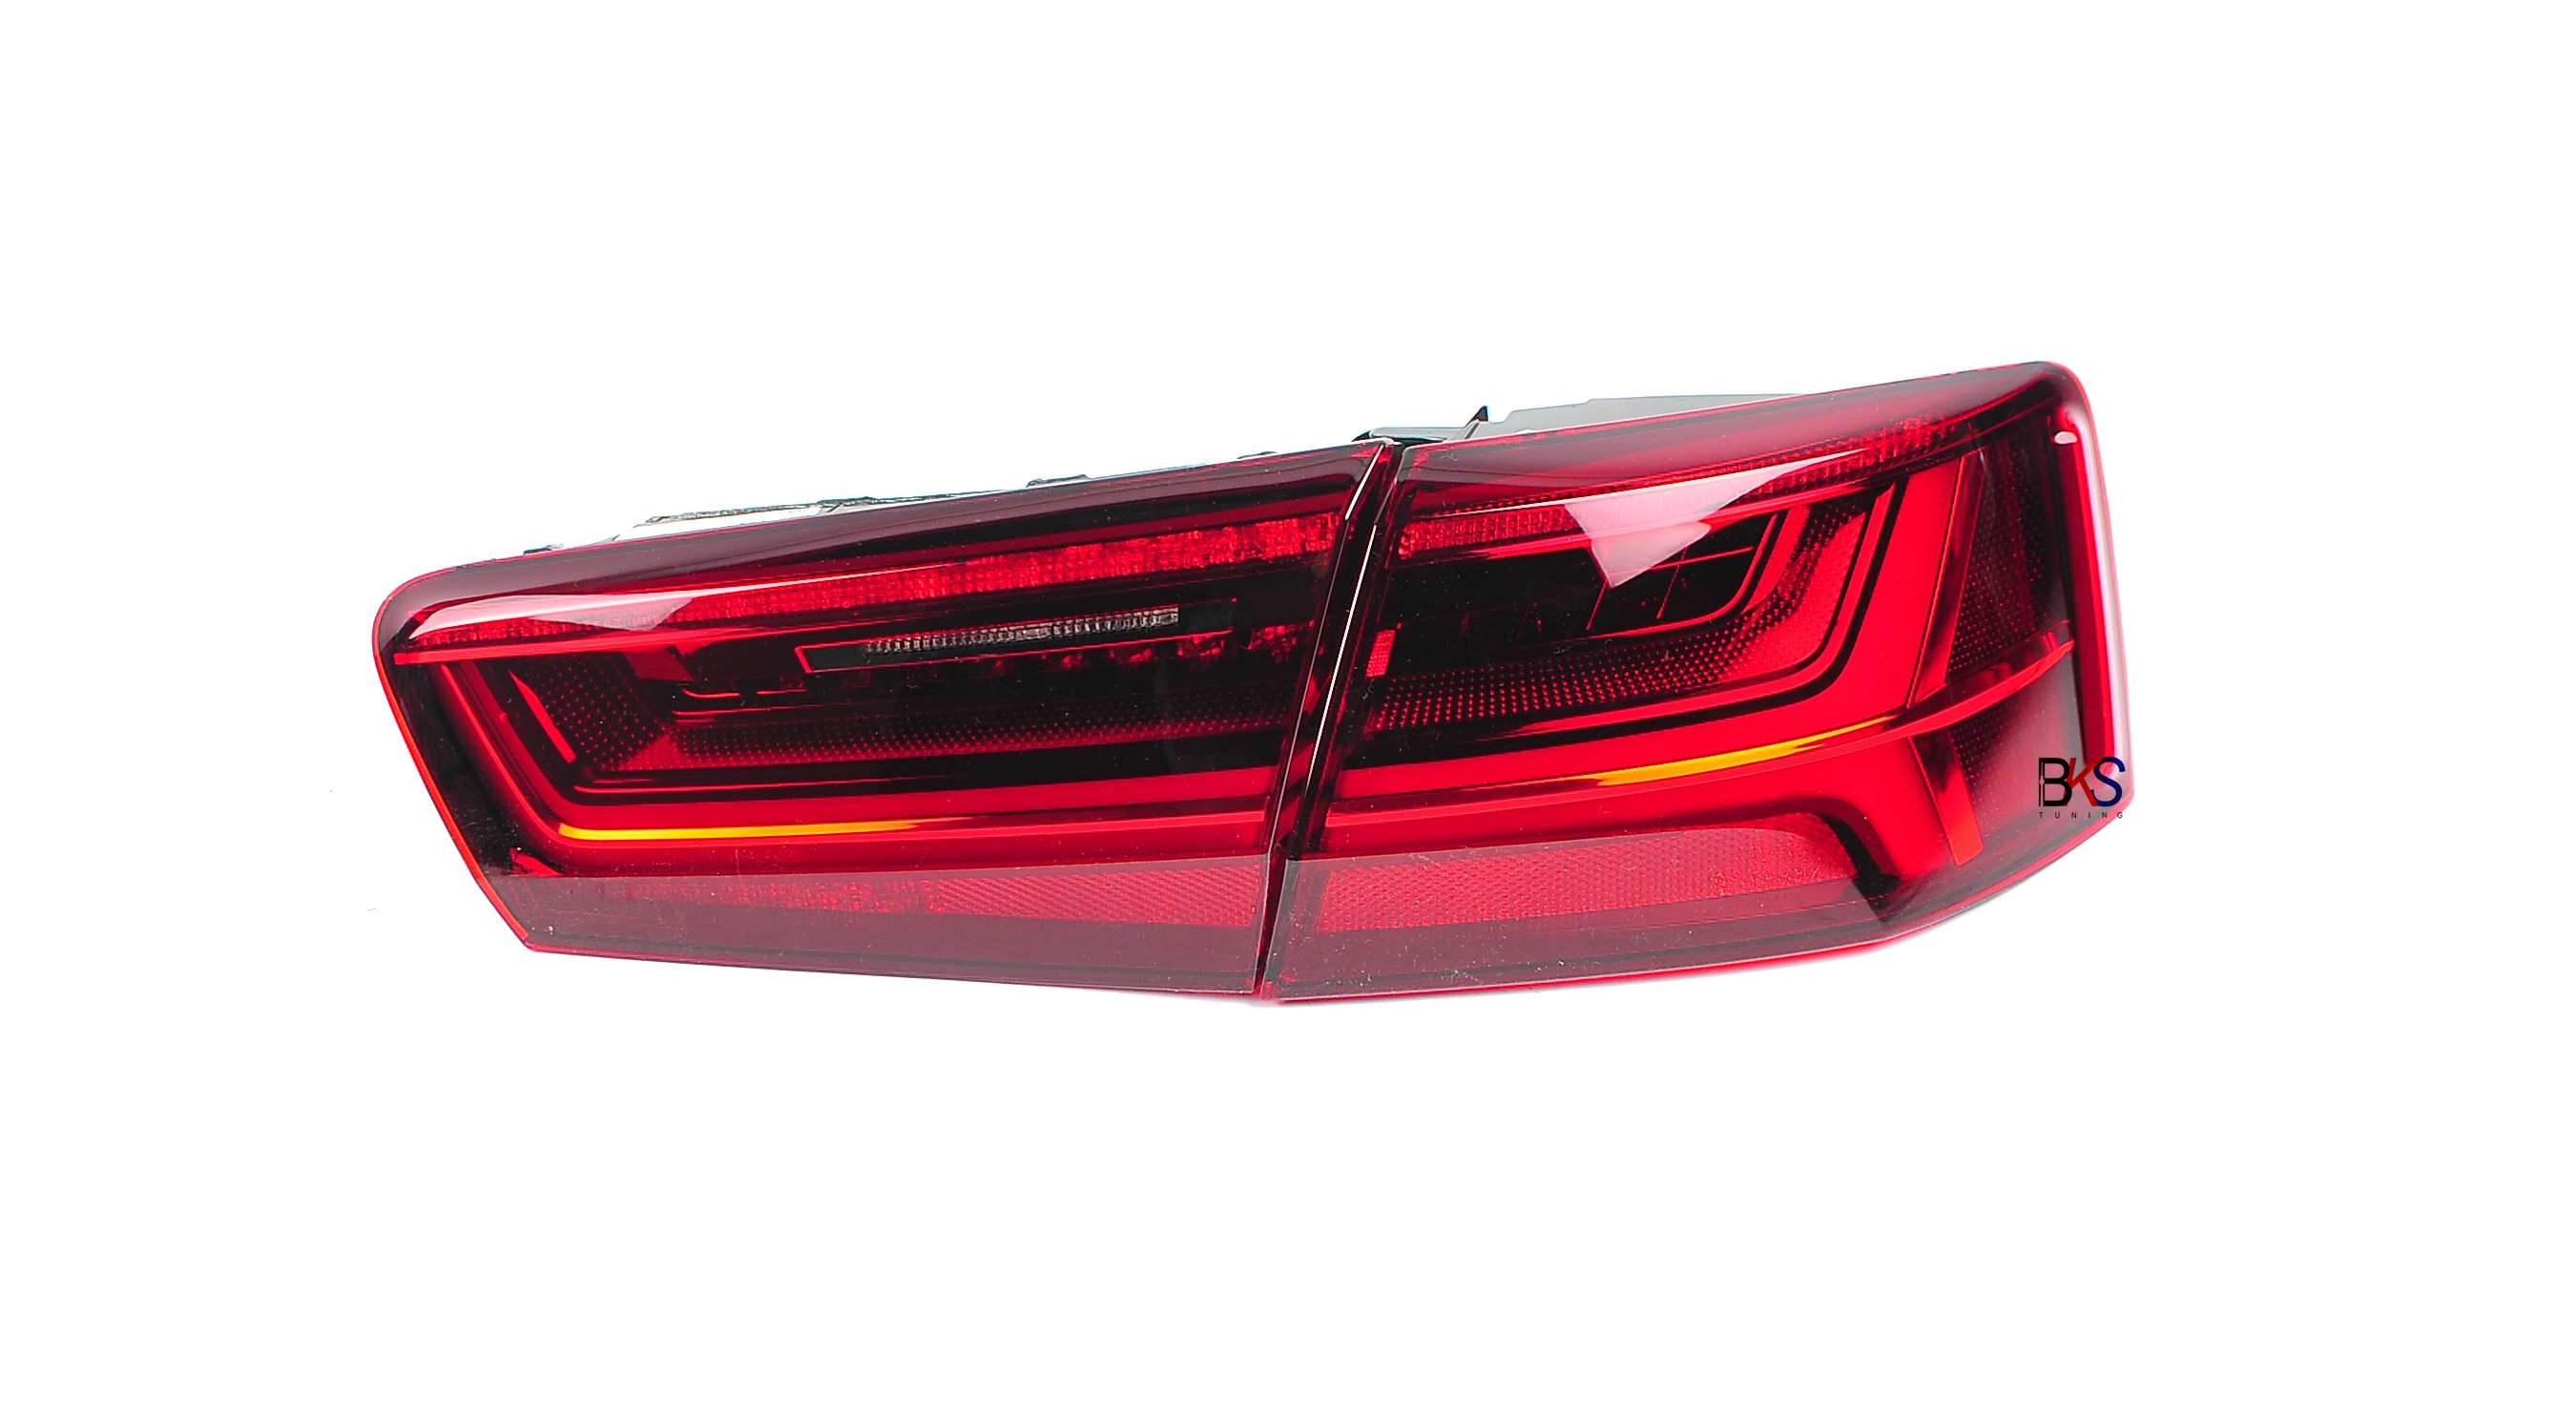 Audi A6 4g C7 Avant Led Taillights Facelift Converion Kit